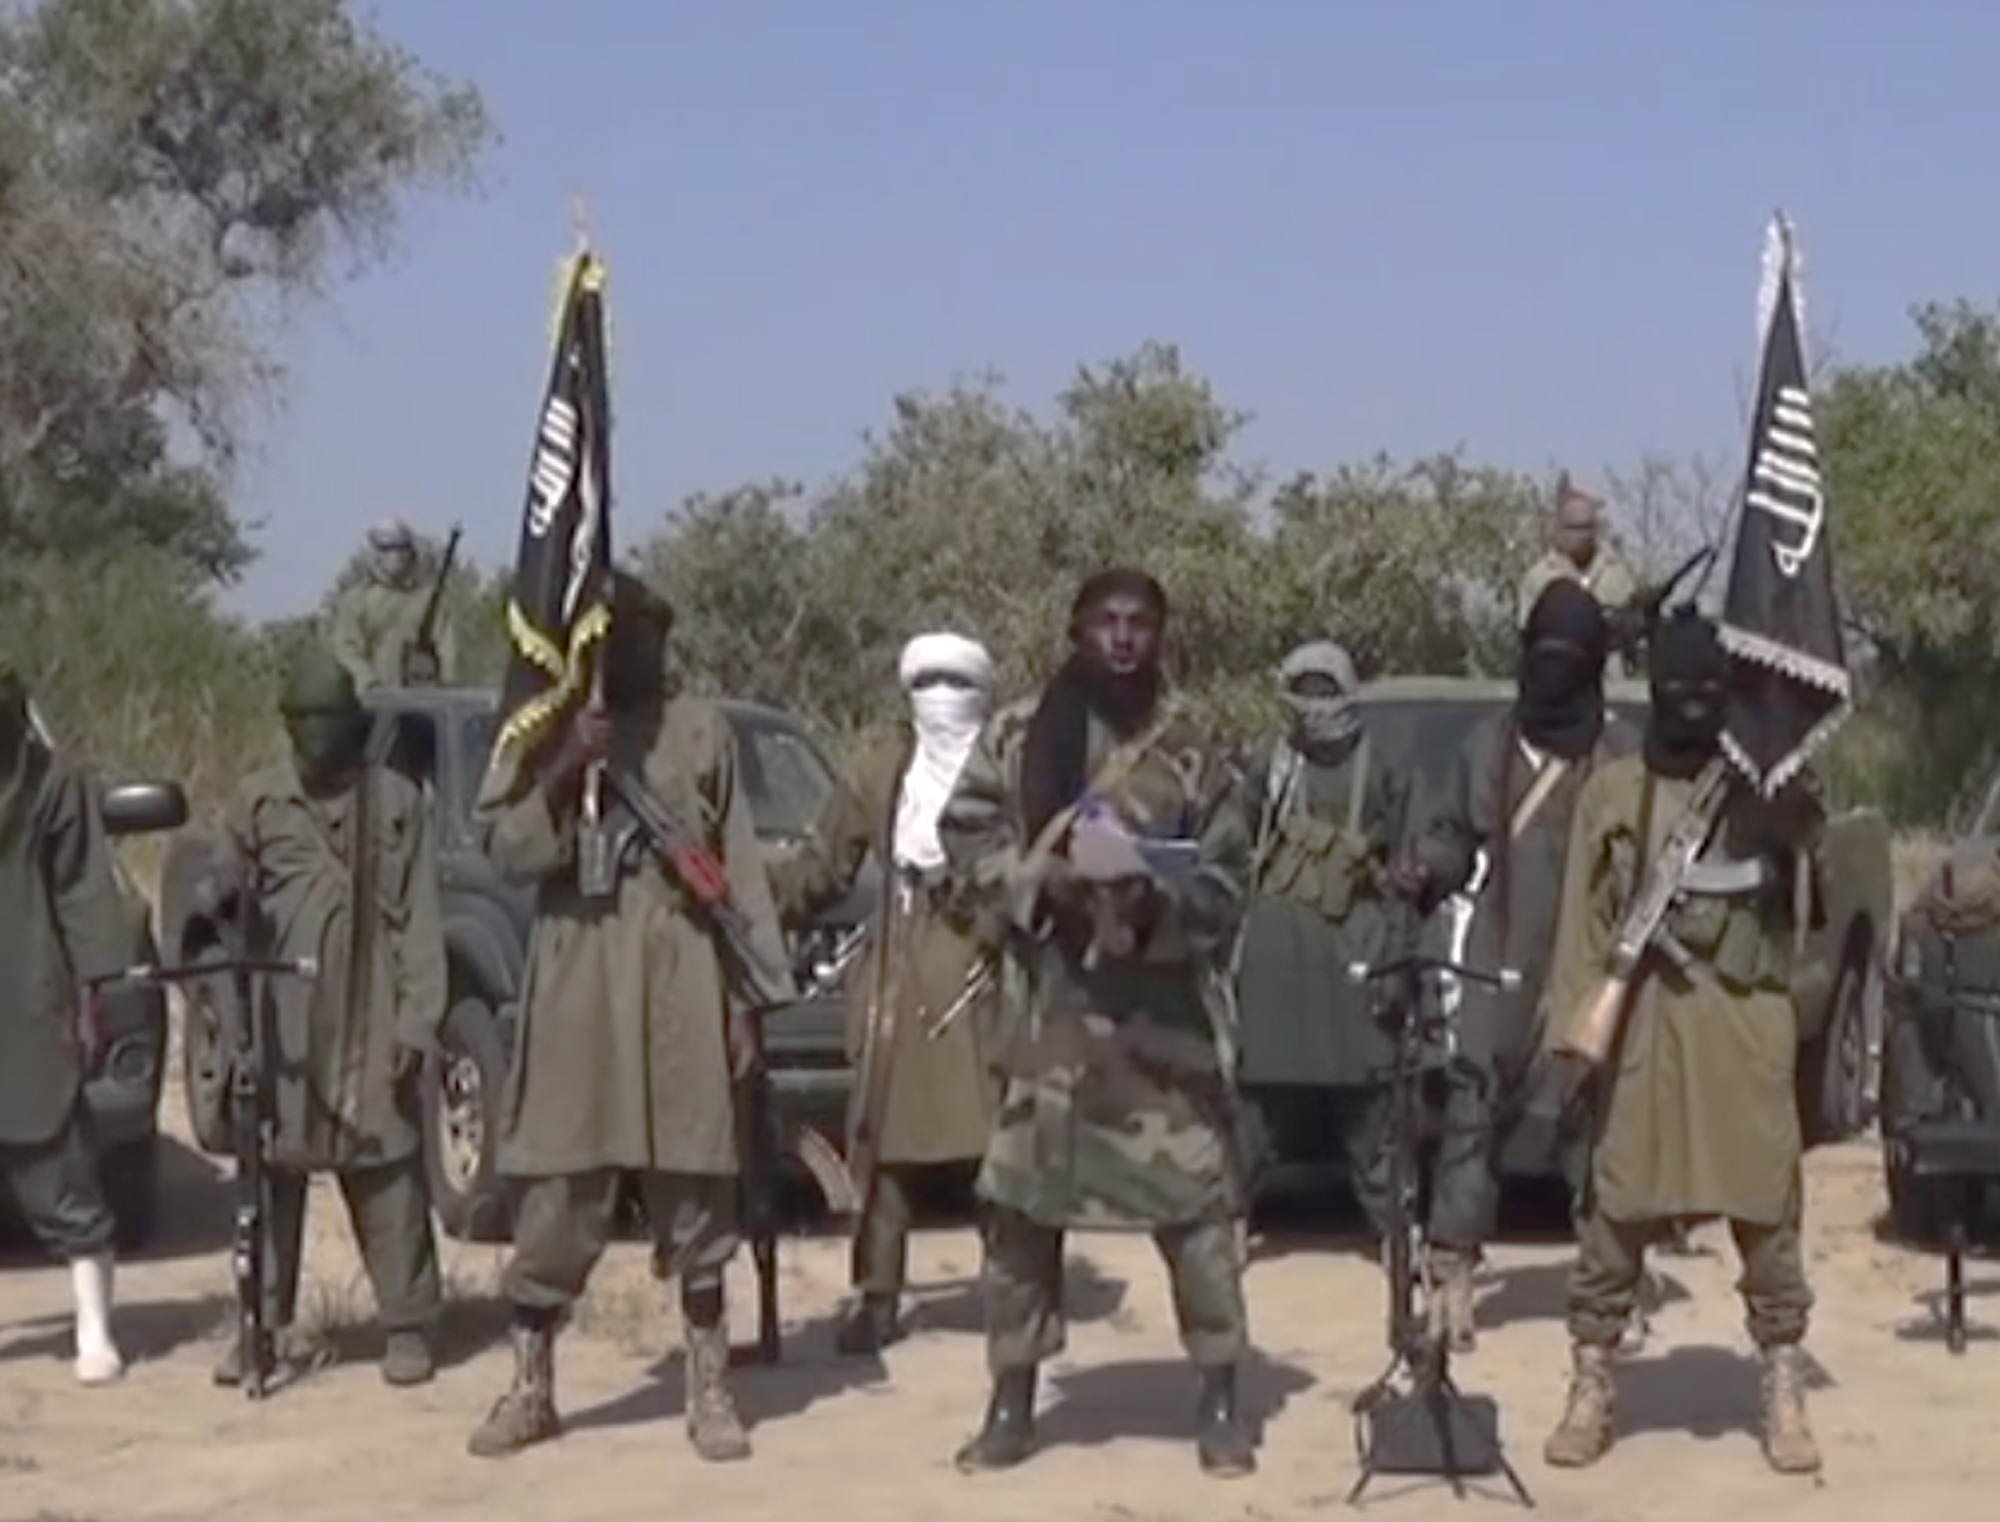 PA 22139934 Boko Haram Use Children In One Fifth Of All Suicide Attacks, Report Says